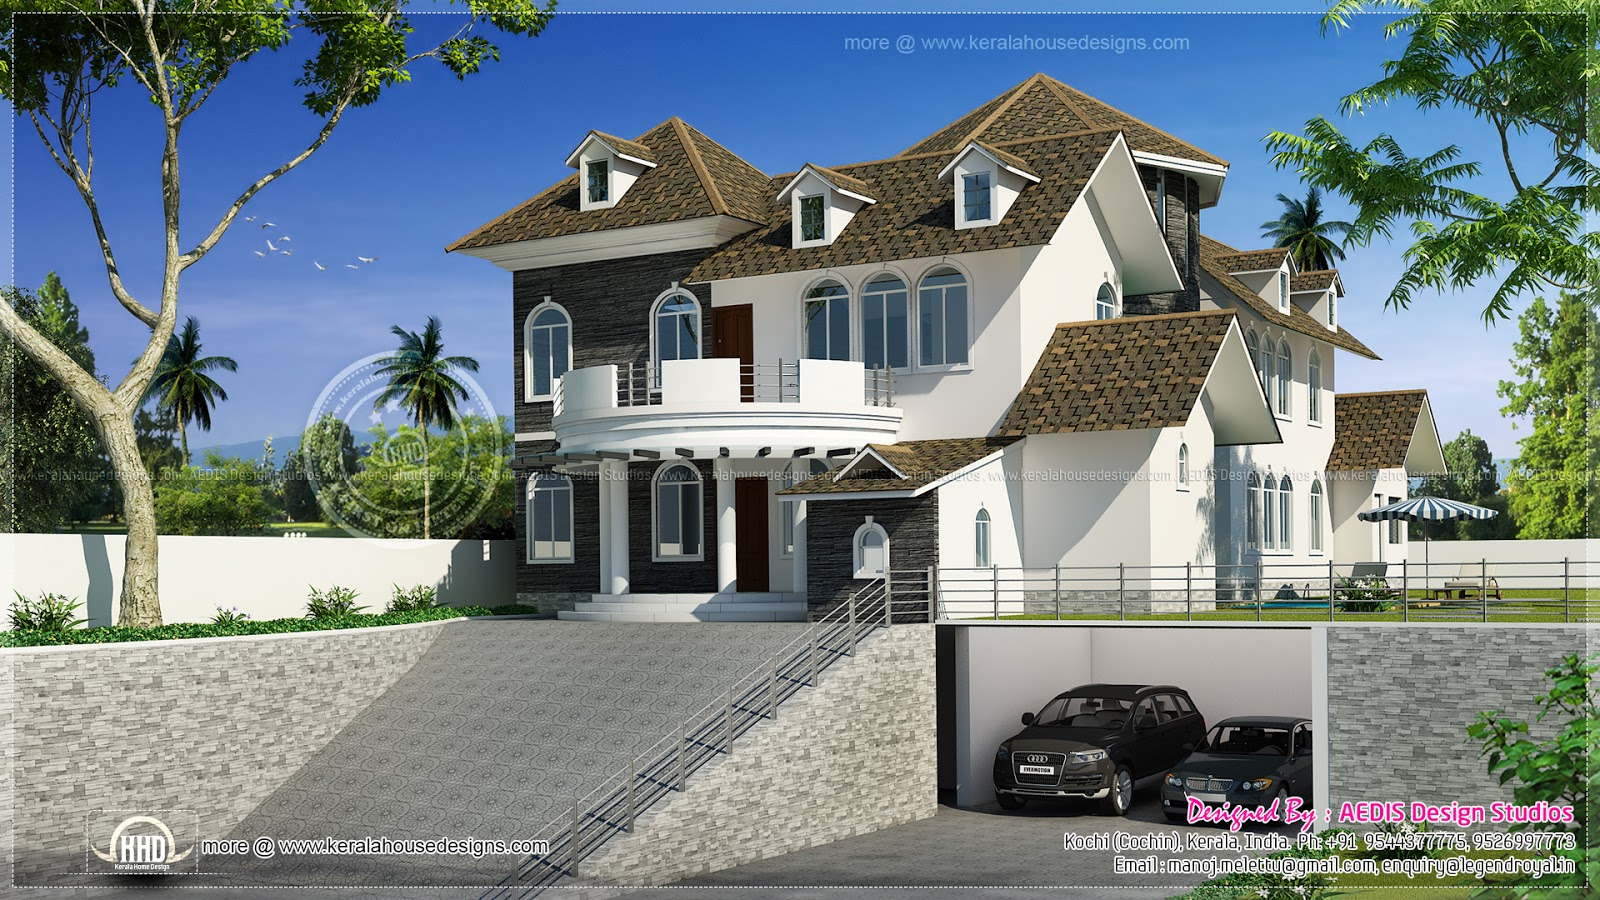 3400 square feet modern hill side home design kerala for Home plans and designs with photos